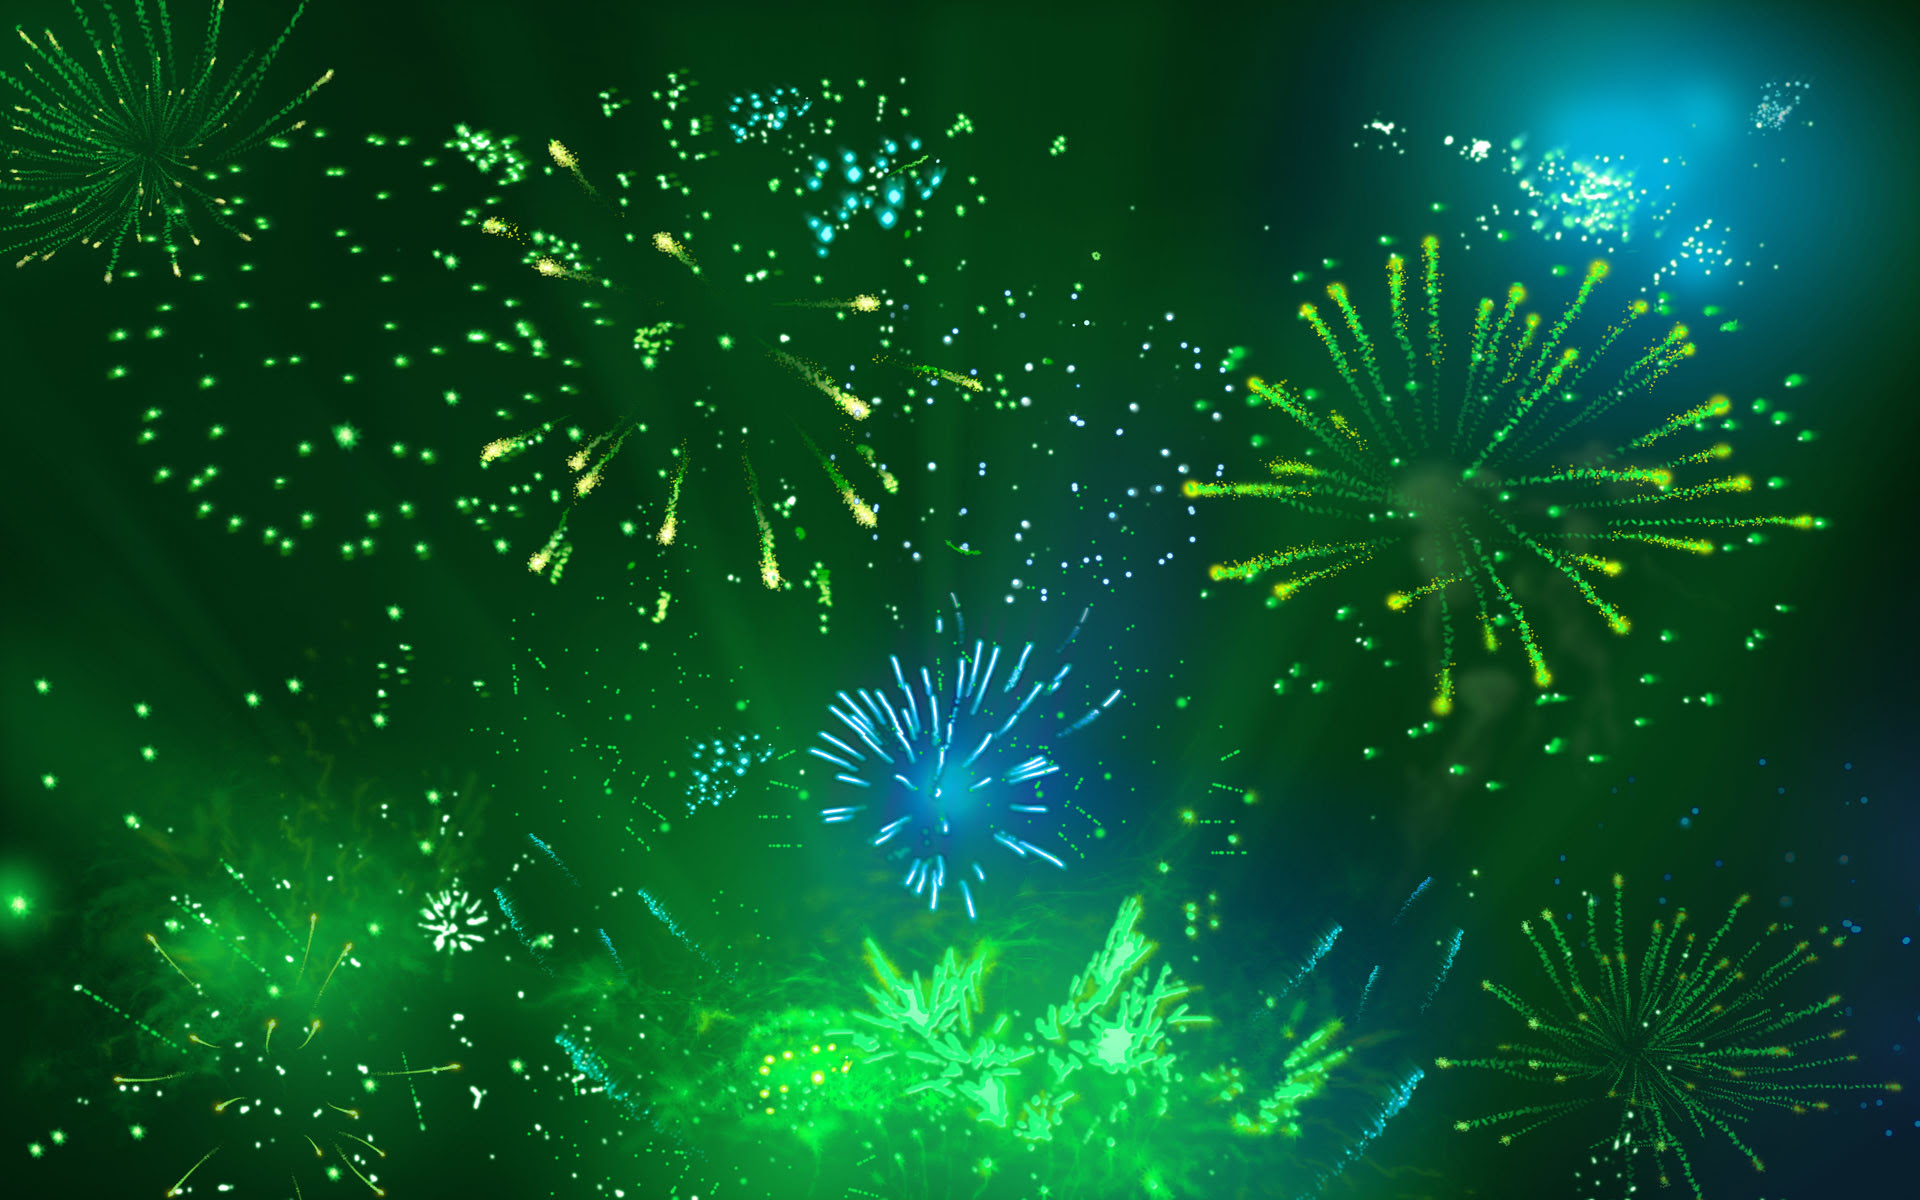 New Year Background Images 42 Images